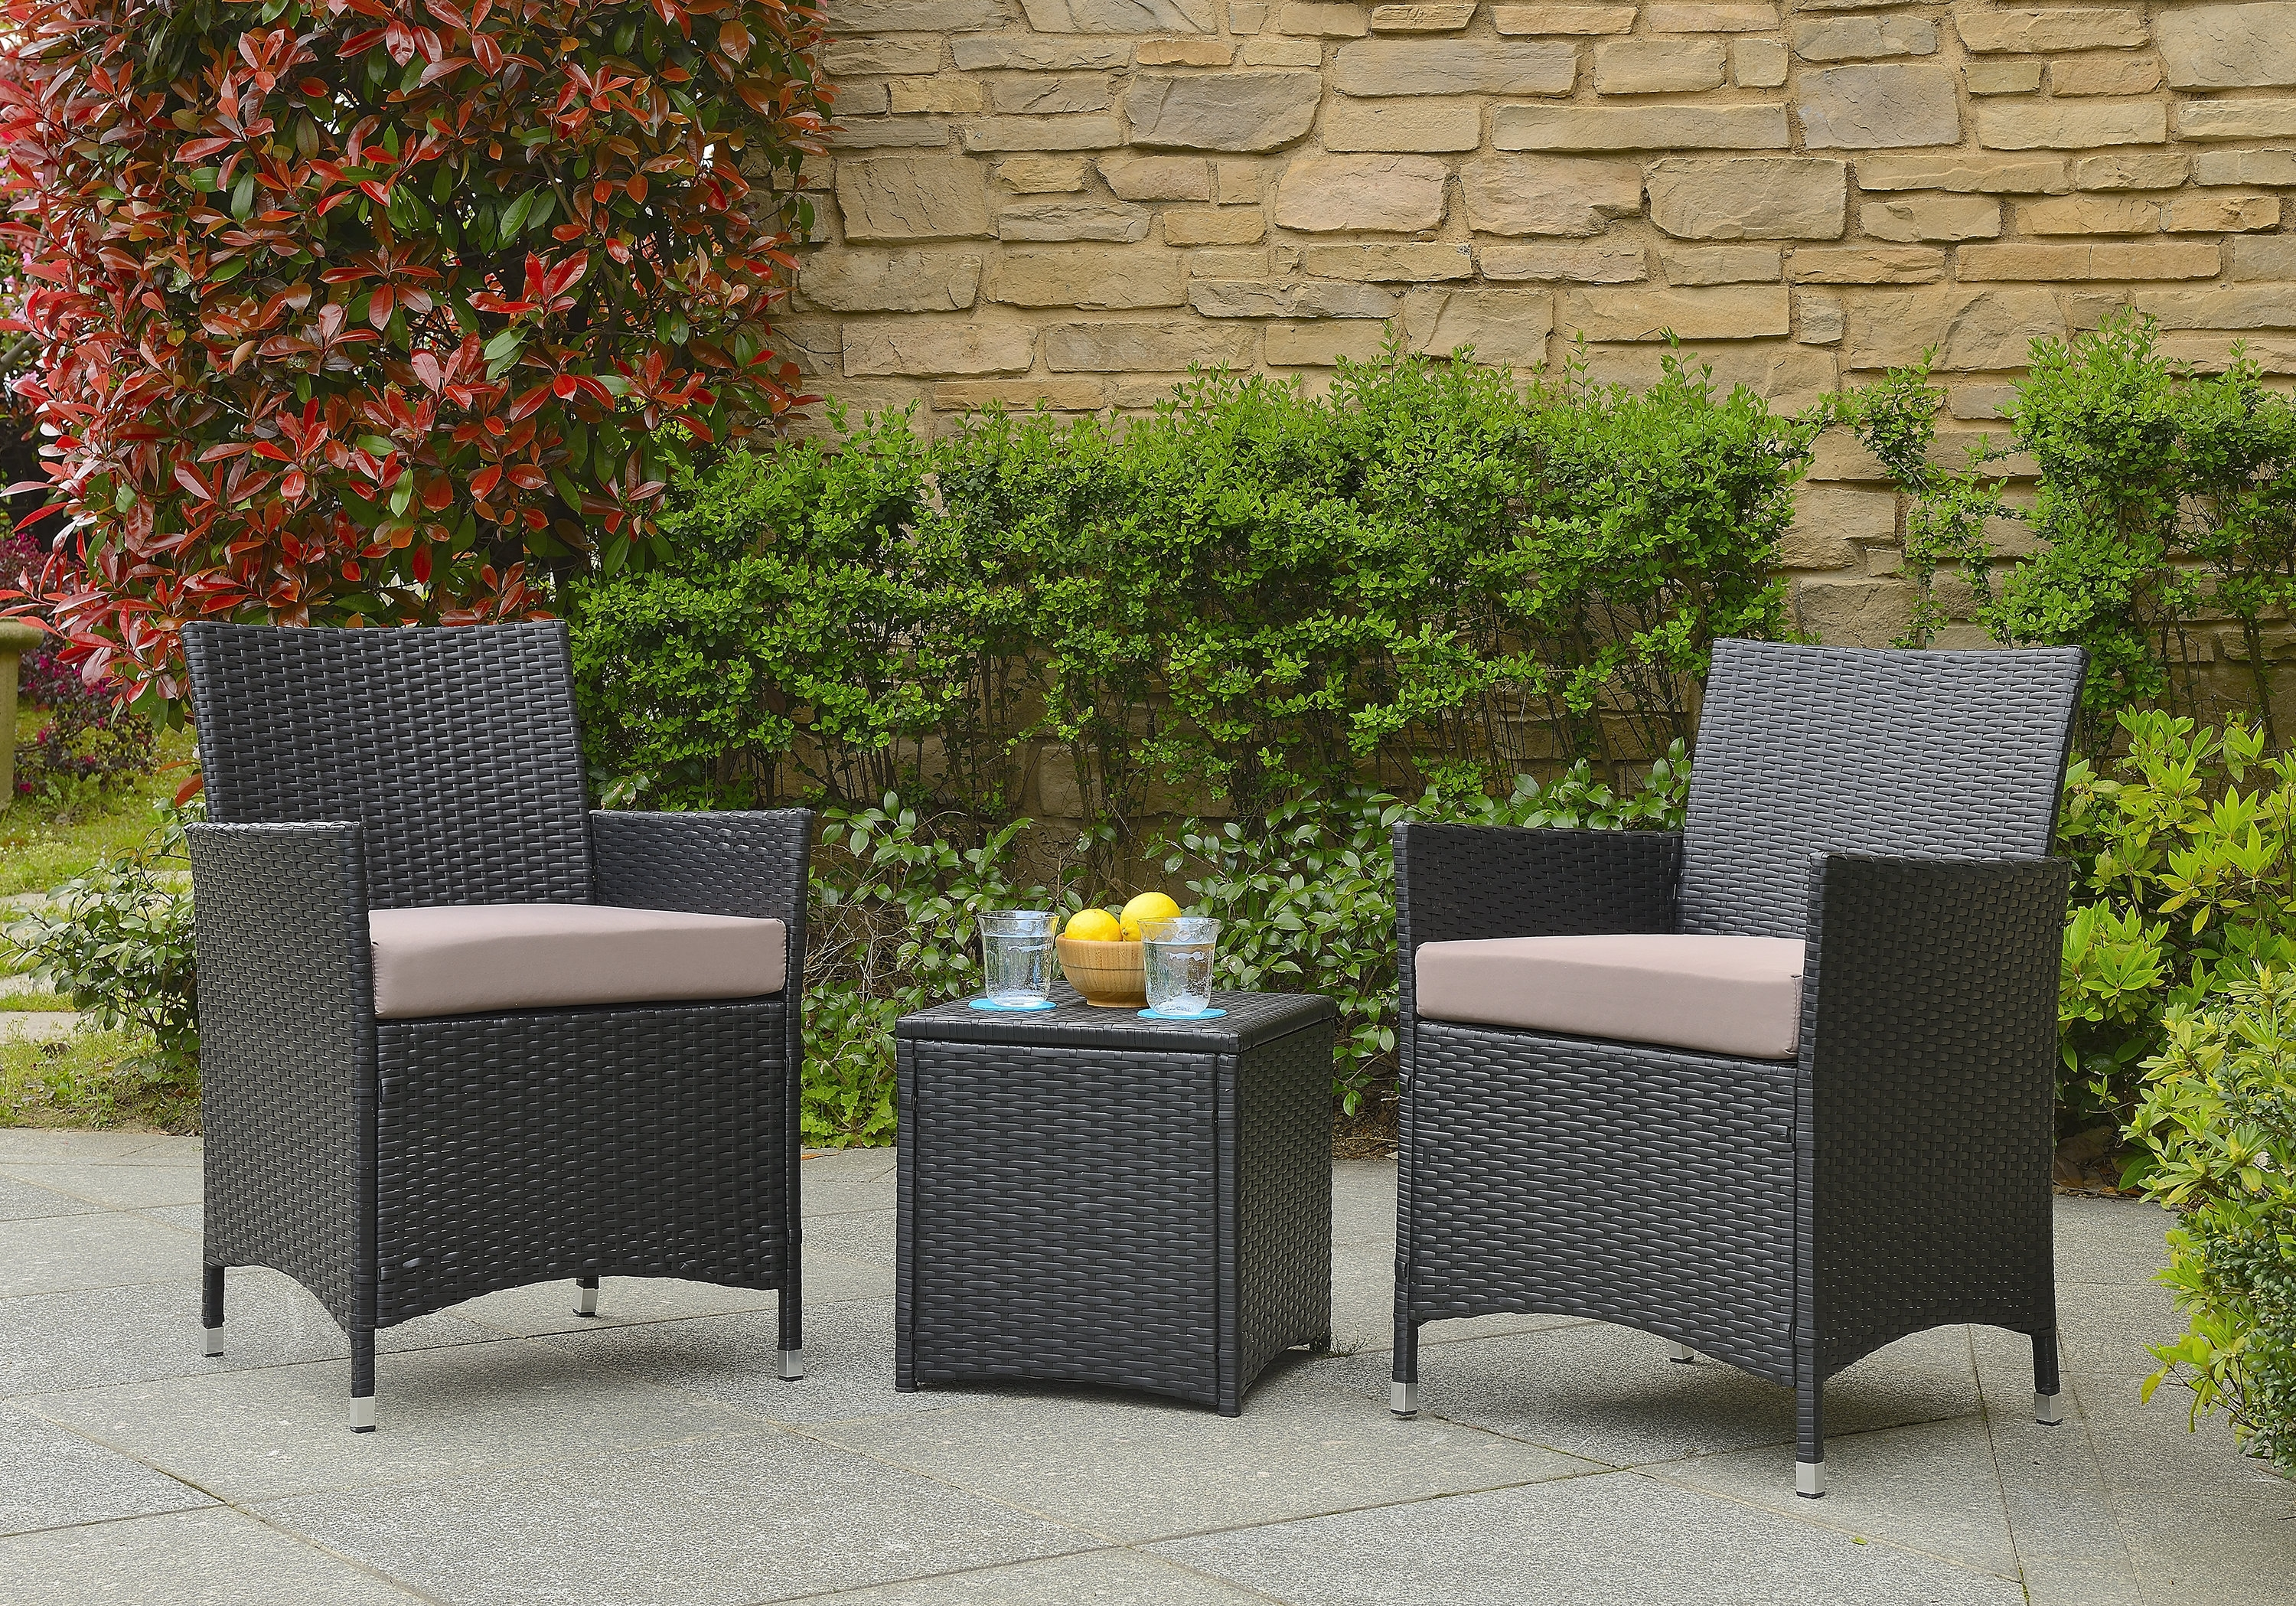 Wayfair Pertaining To Patio Conversation Sets With Storage (View 19 of 20)